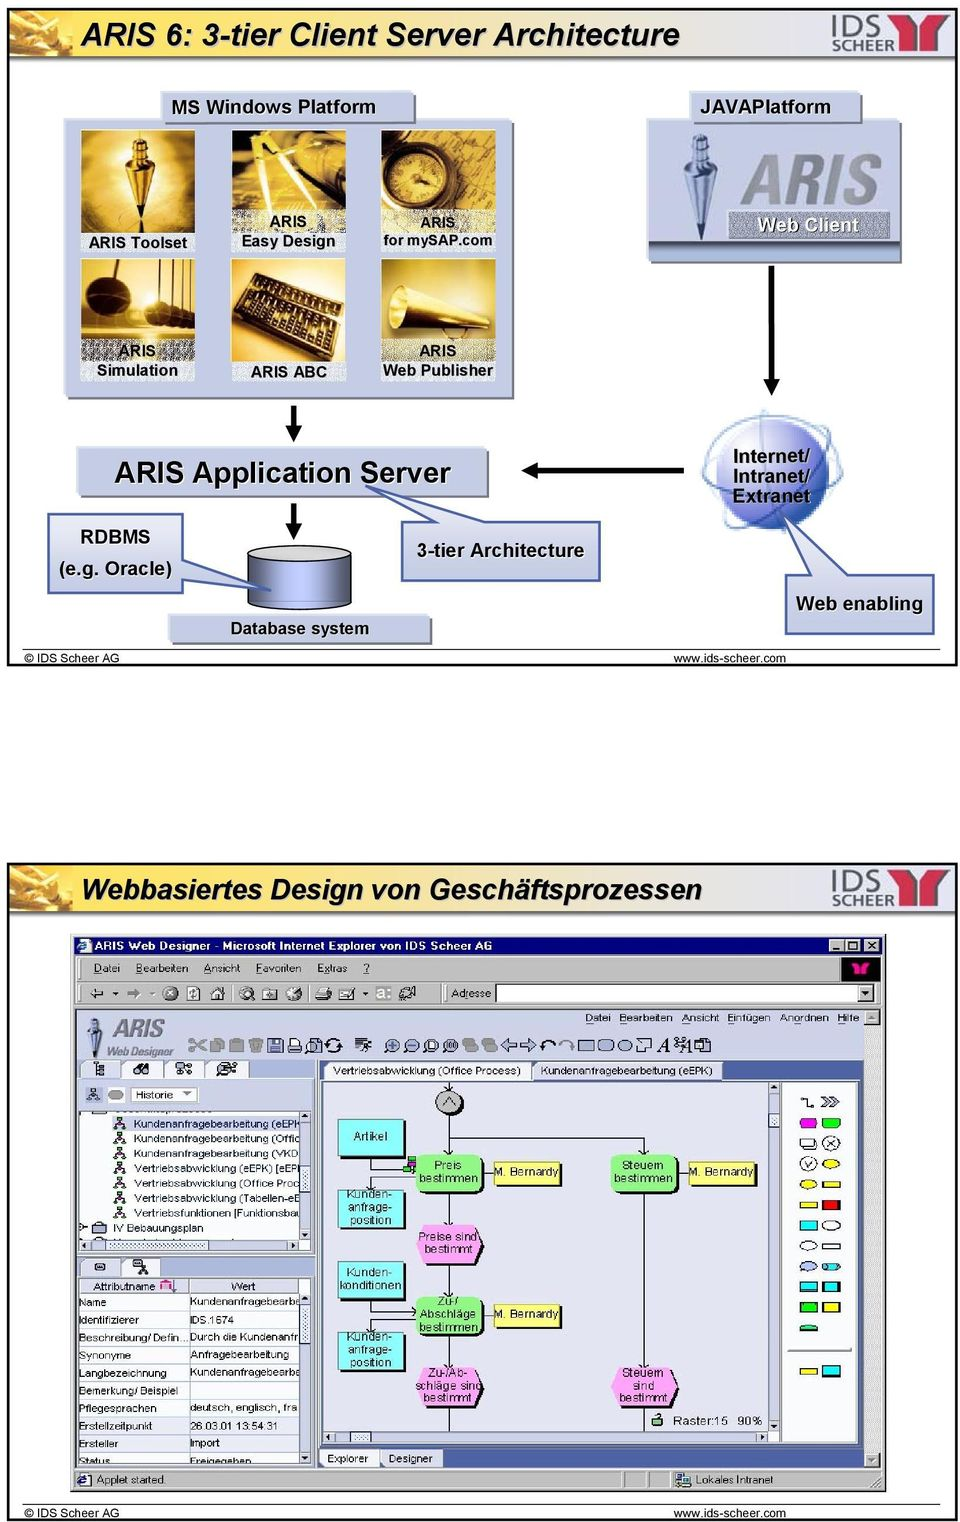 com Web Client ARIS Simulation ARIS ABC ARIS Web Publisher ARIS Application Server